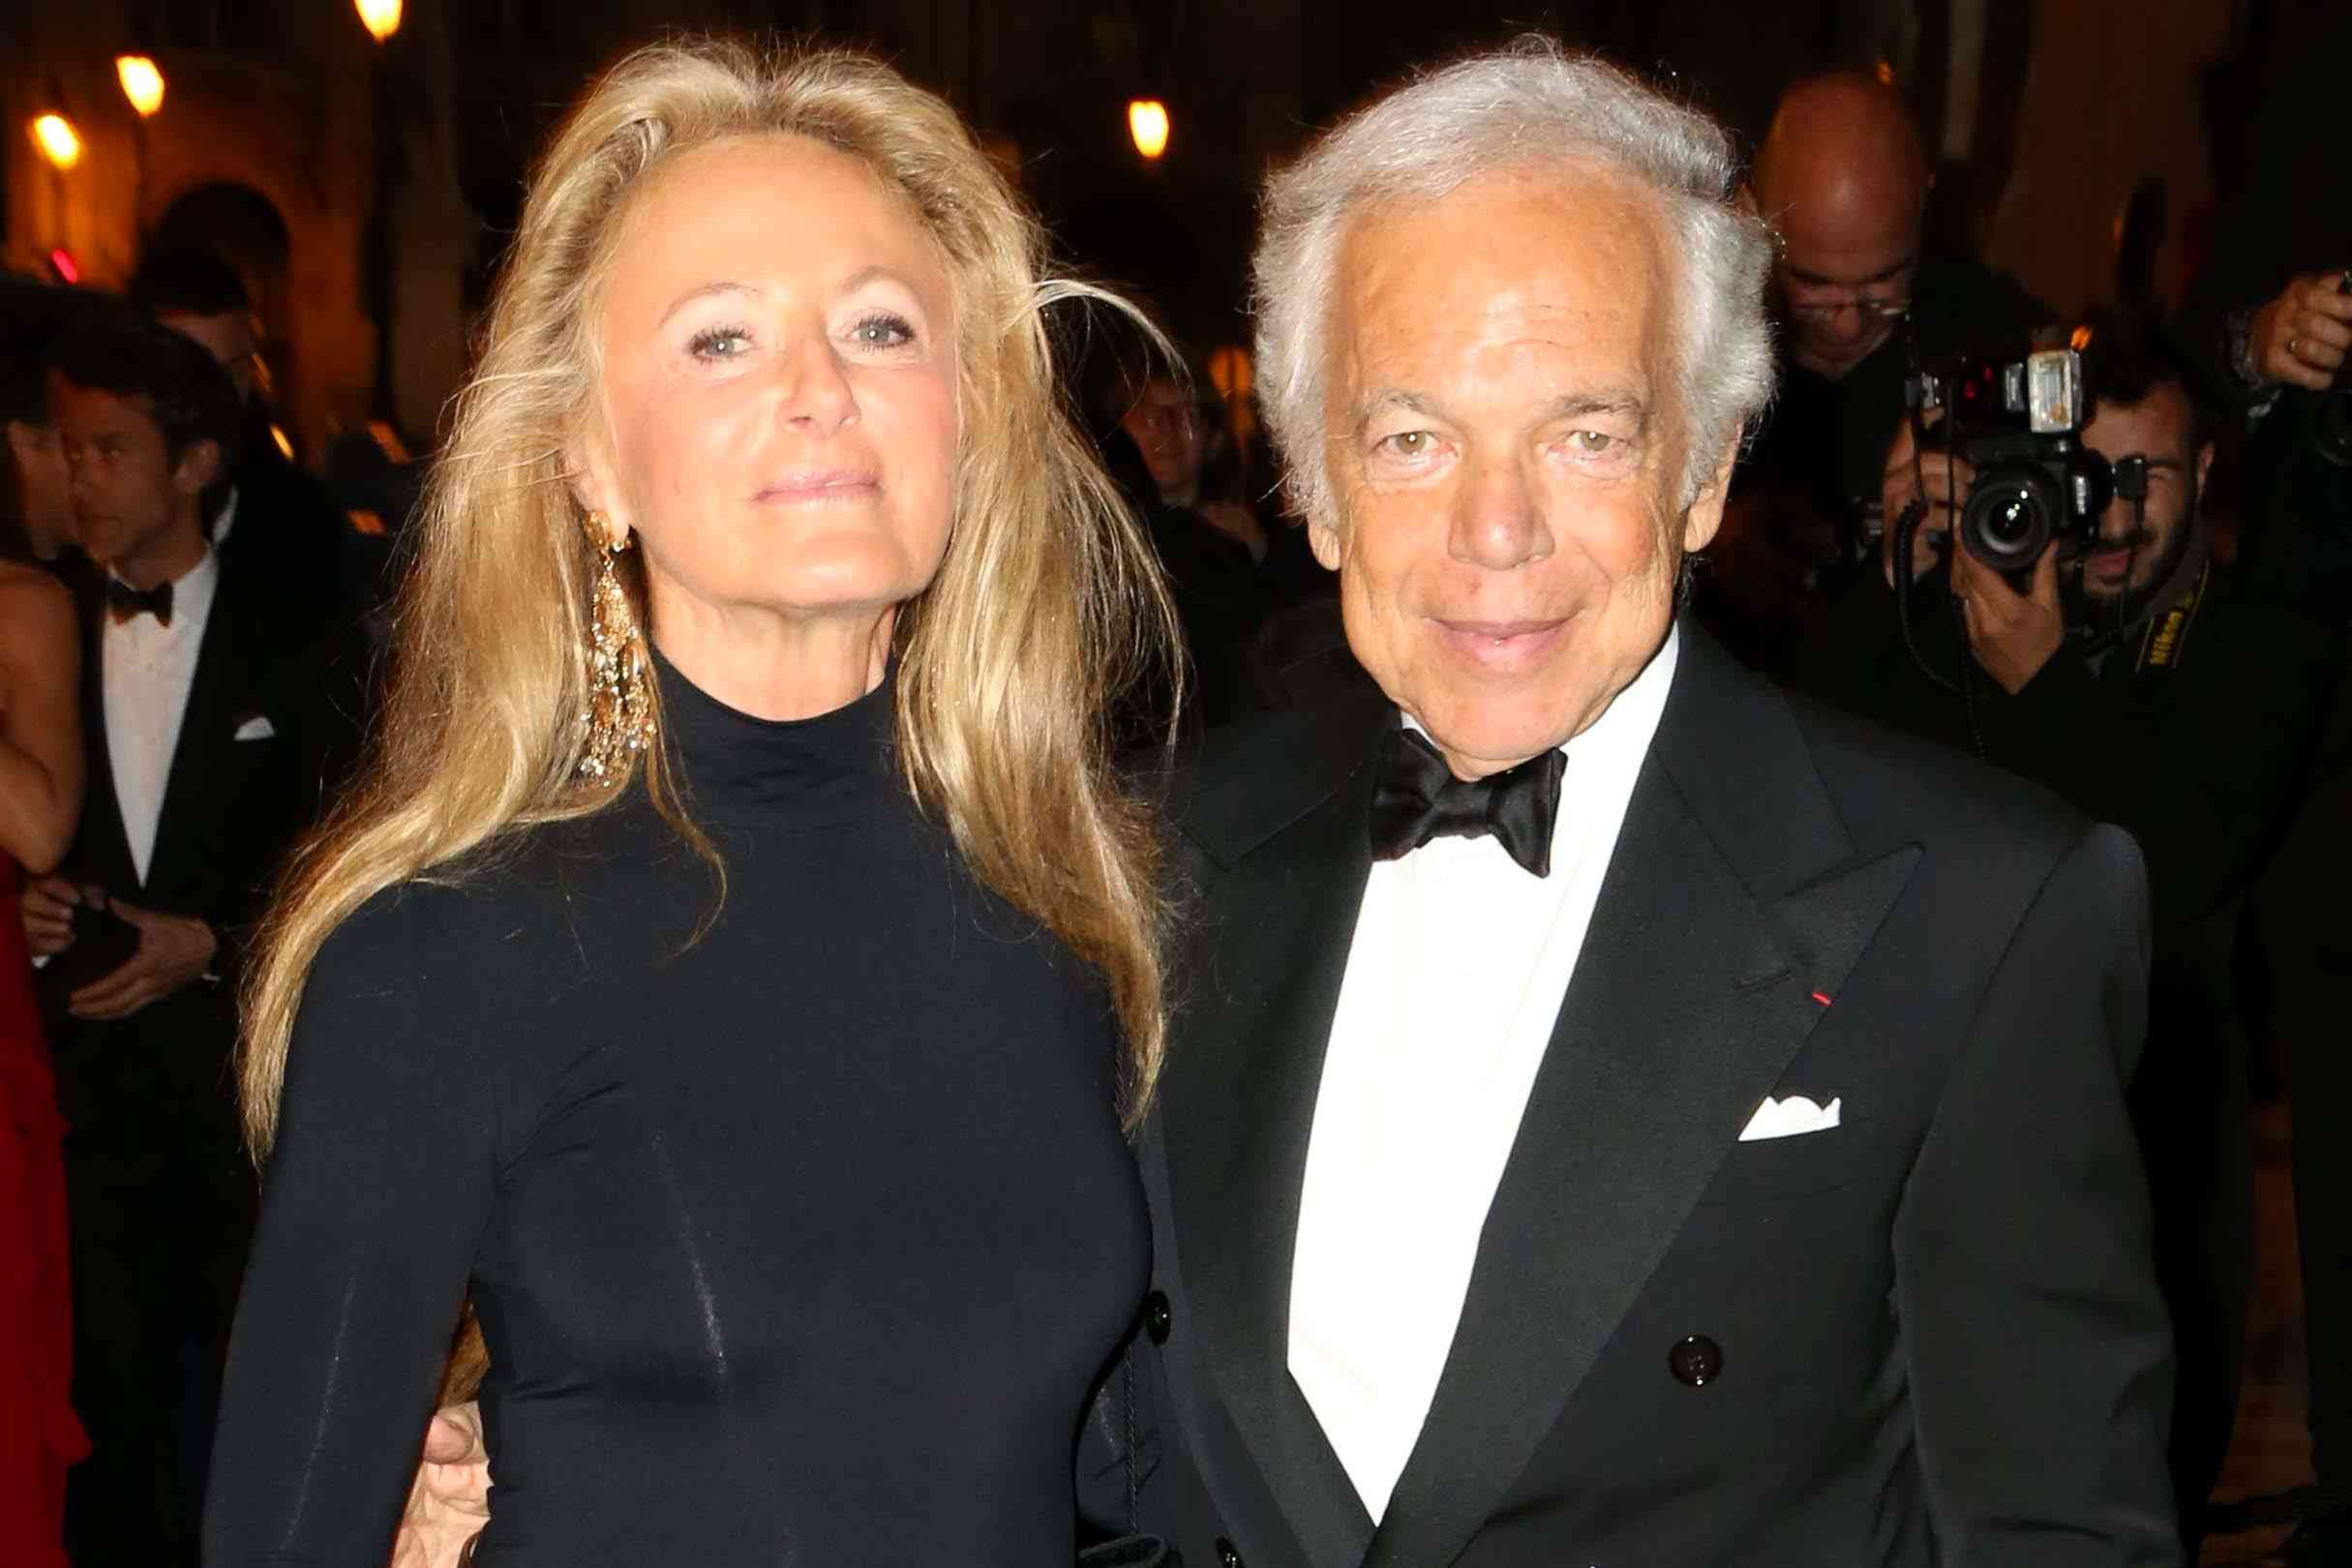 PARIS, FRANCE - OCTOBER 09: Ricky Lauren and Ralph Lauren arrive at a Ralph Lauren Collection Show and private dinner at Les Beaux-Arts de Paris on October 9, 2013 in Paris, France. On this occasion Ralph Lauren celebrates the restoration project and patron sponsorship of L'Ecole des Beaux-Arts. (Photo by Michel Dufour/WireImage)